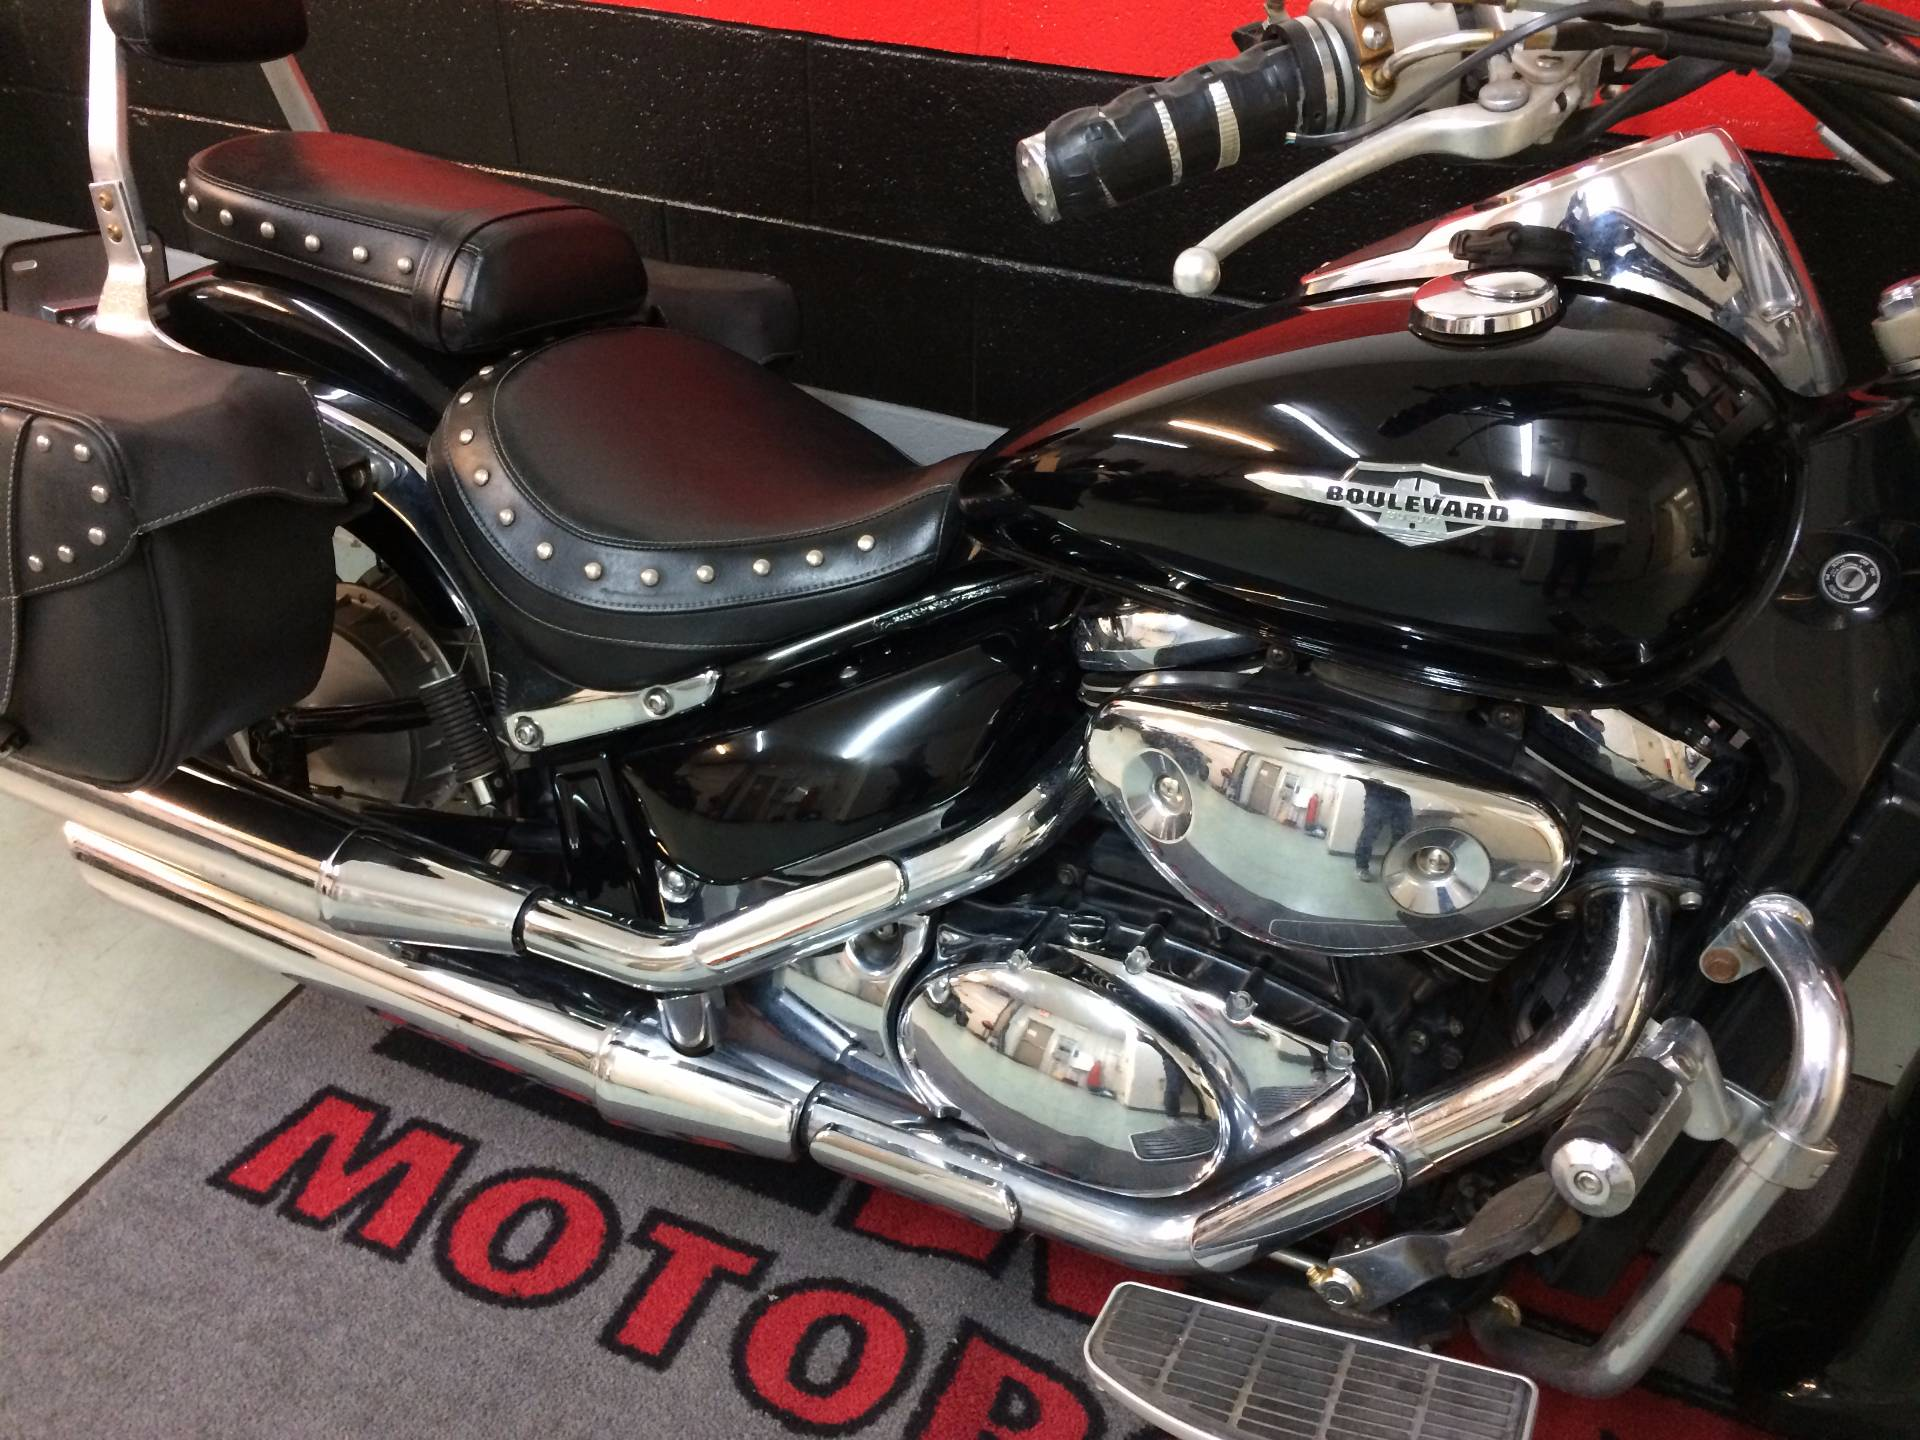 2005 Suzuki Boulevard C50 Black in Asheville, North Carolina